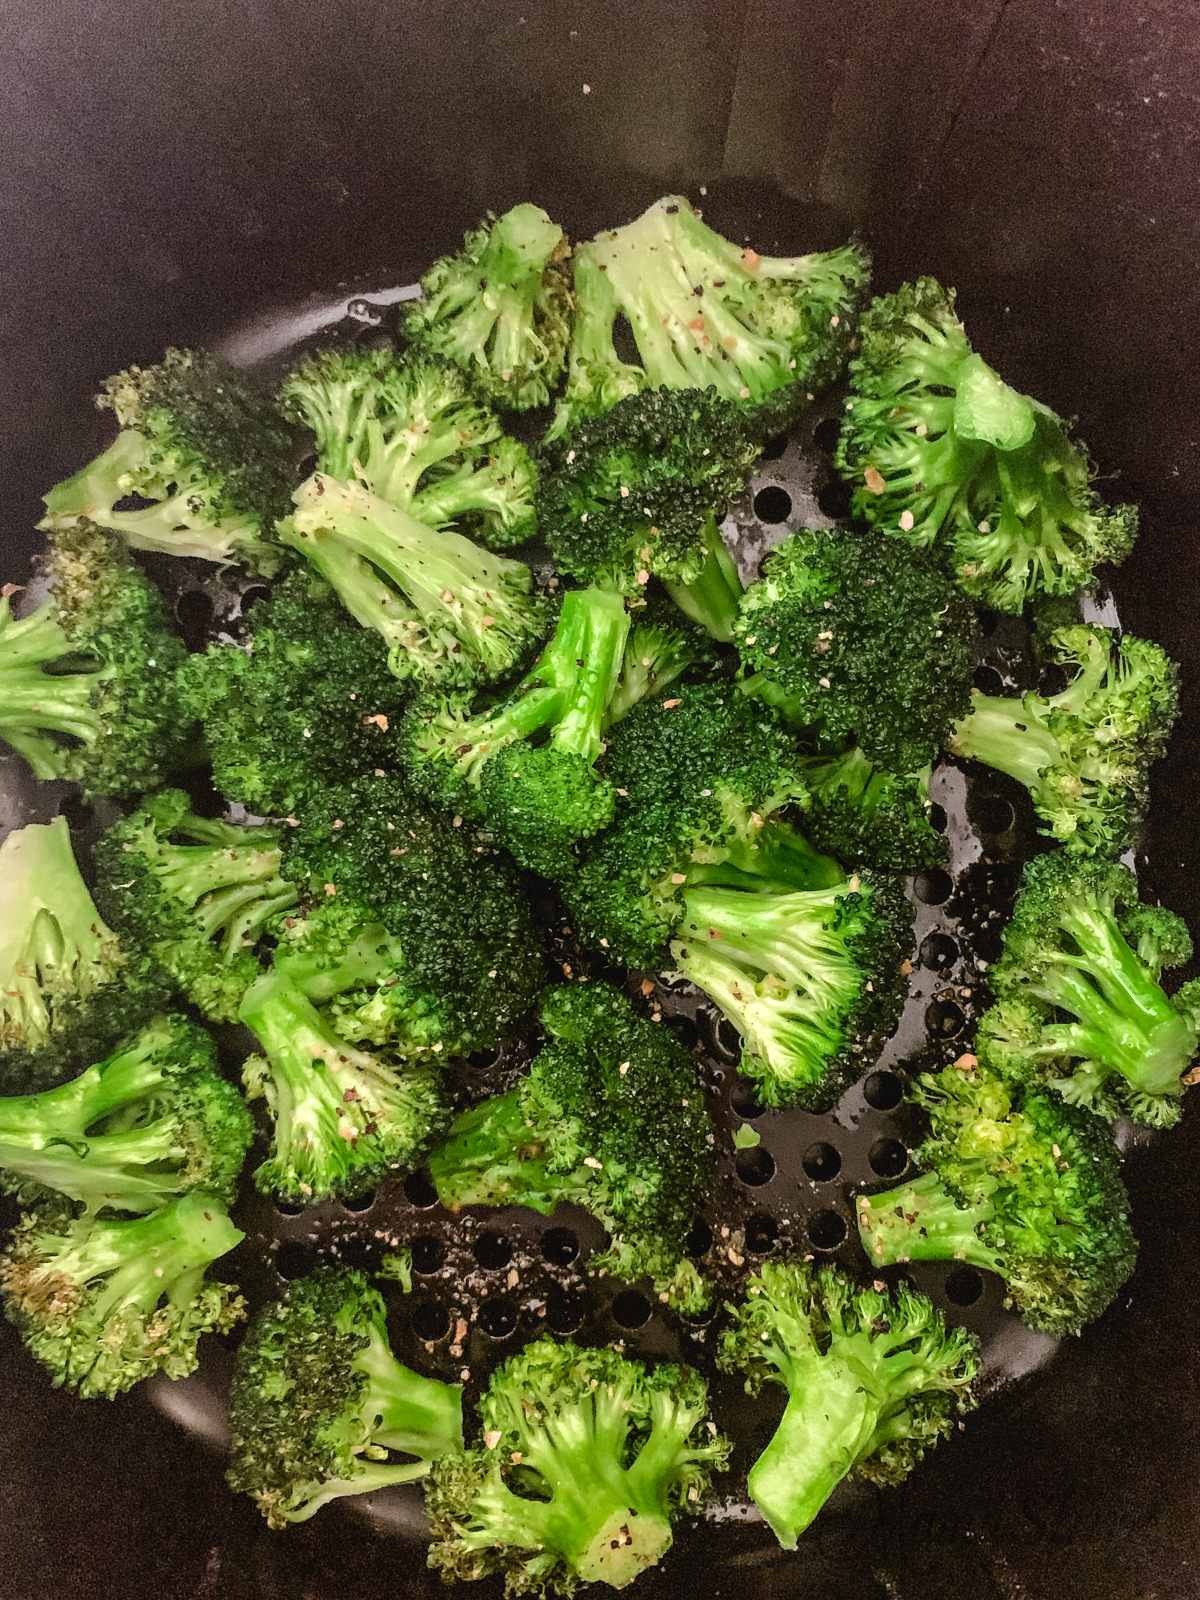 Air-fried broccoli seasoned with lemon pepper